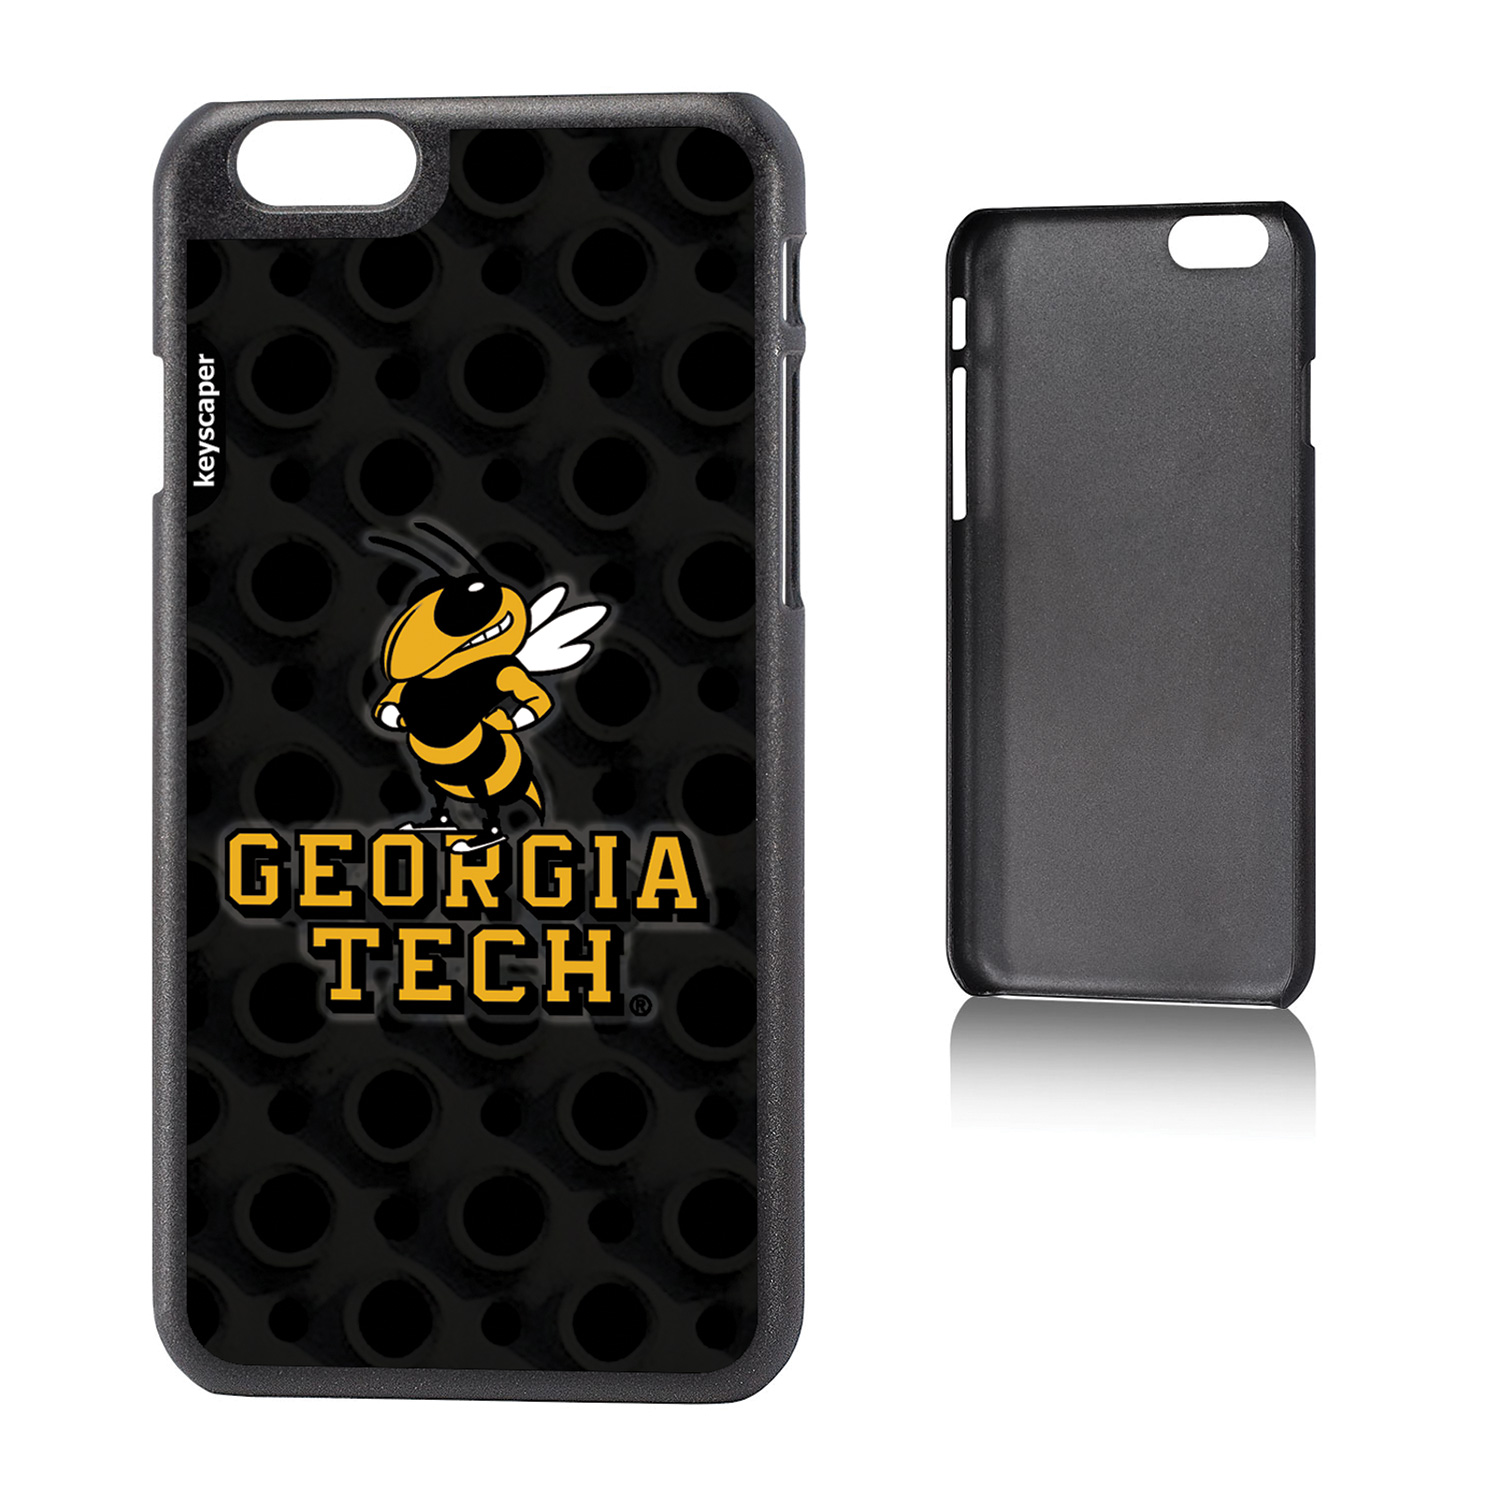 Georgia Tech Slim Case for the iPhone 6 / 6S / 7 / 8 NCAA